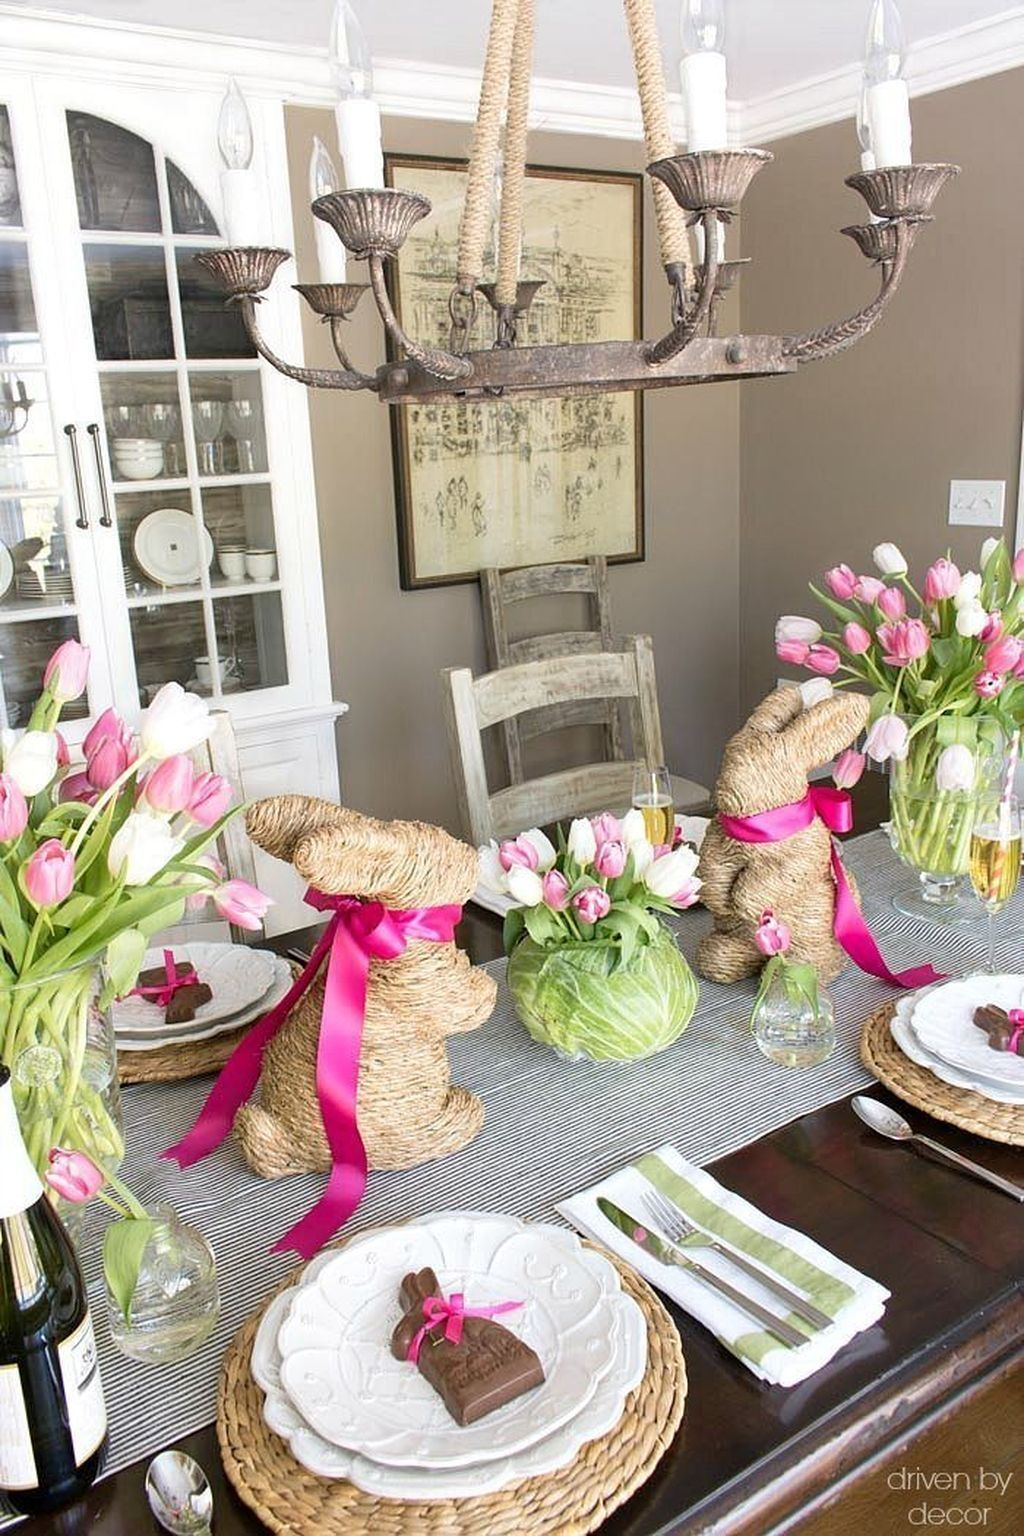 50 Amazing Easter Centerpiece Decorative Ideas For